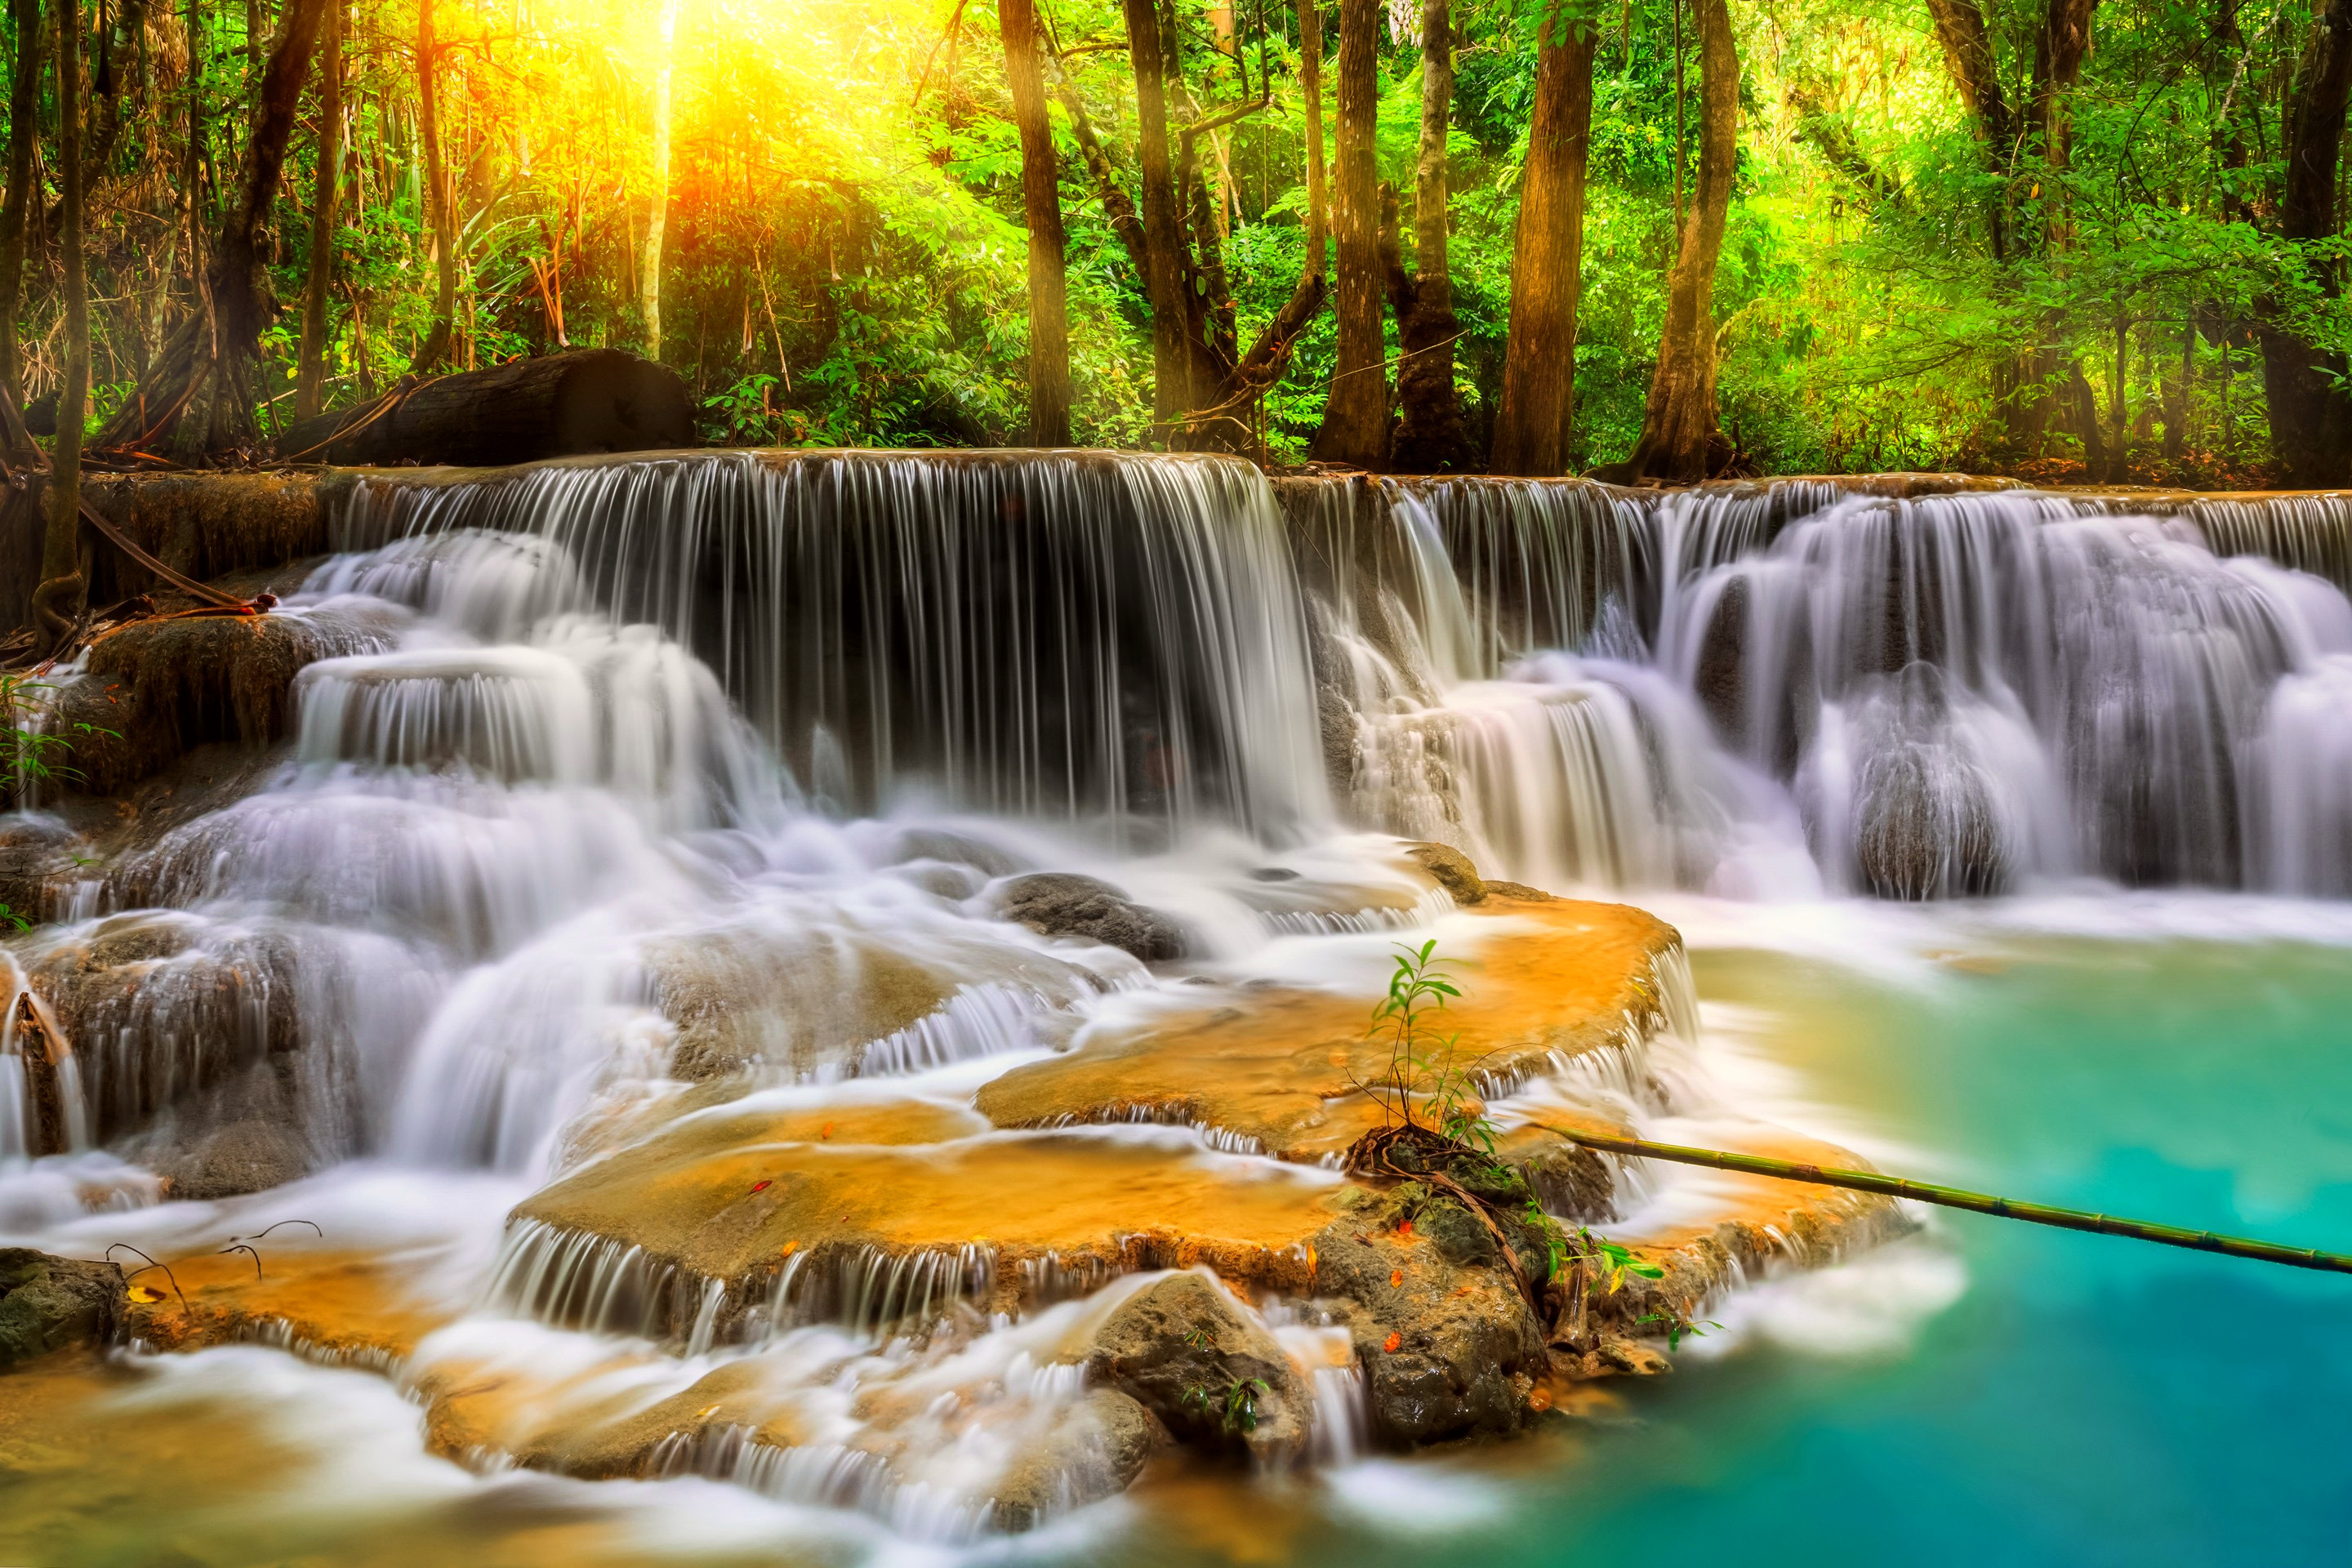 Beautiful Waterfalls Wallpapers Deskto HD Wallpaper, Background Images